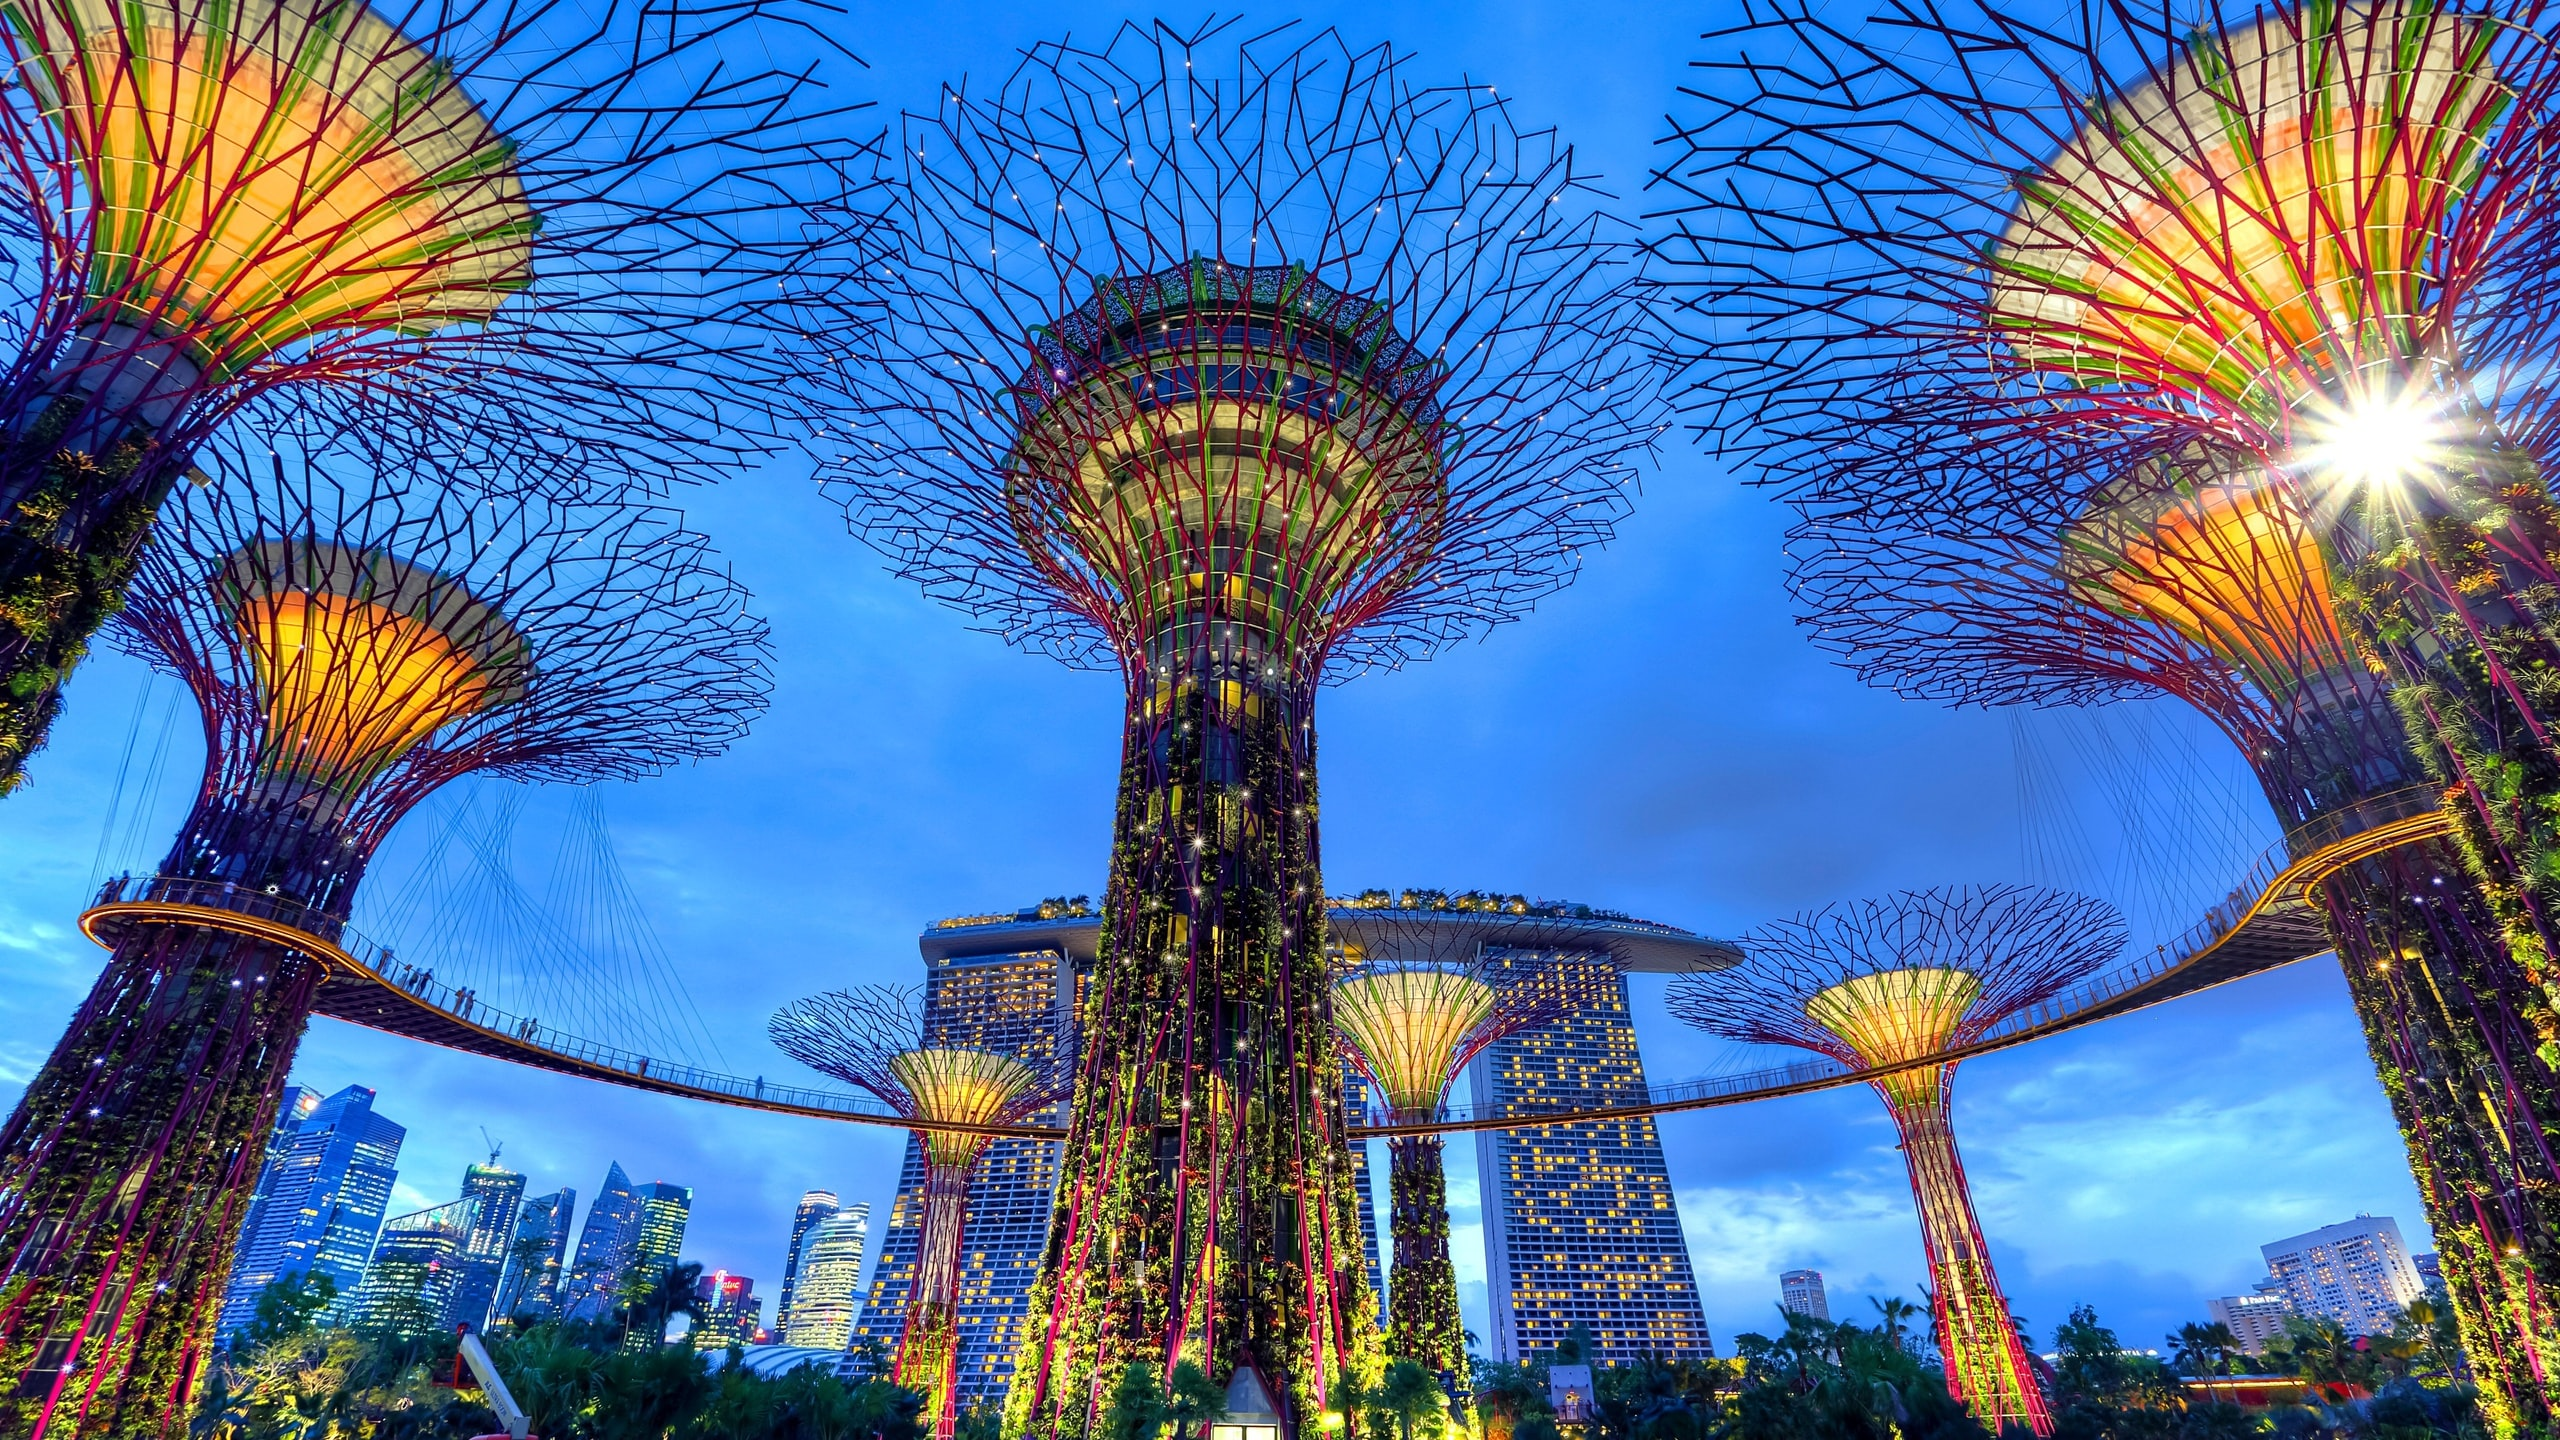 Garden's by the bay, Singapore